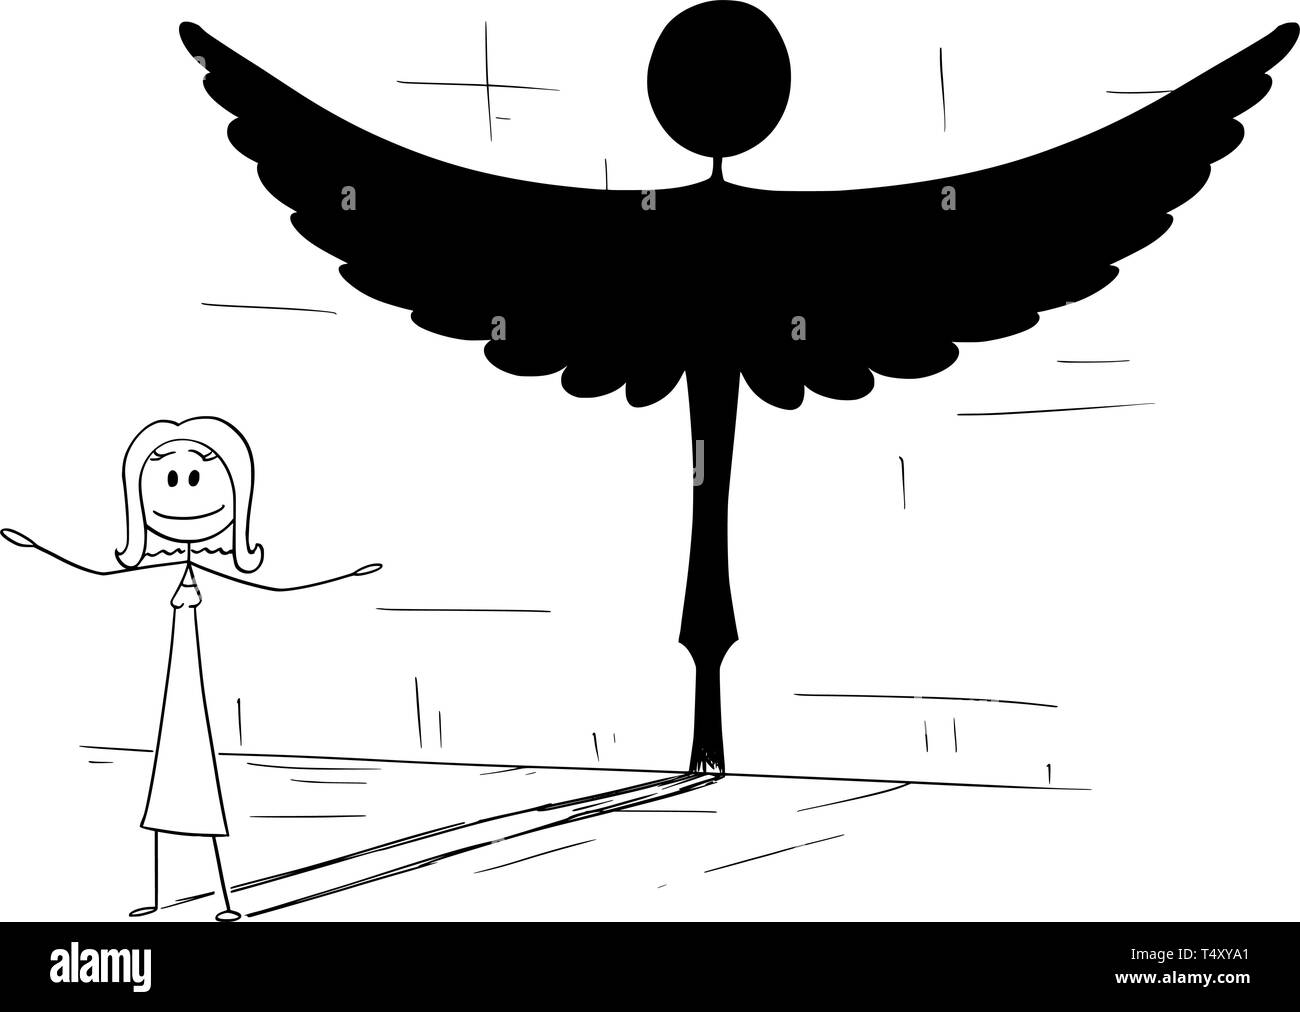 Cartoon stick figure drawing conceptual illustration of good woman or person casting shadow in shape of angel. Metaphor or true personality hidden inside. - Stock Vector